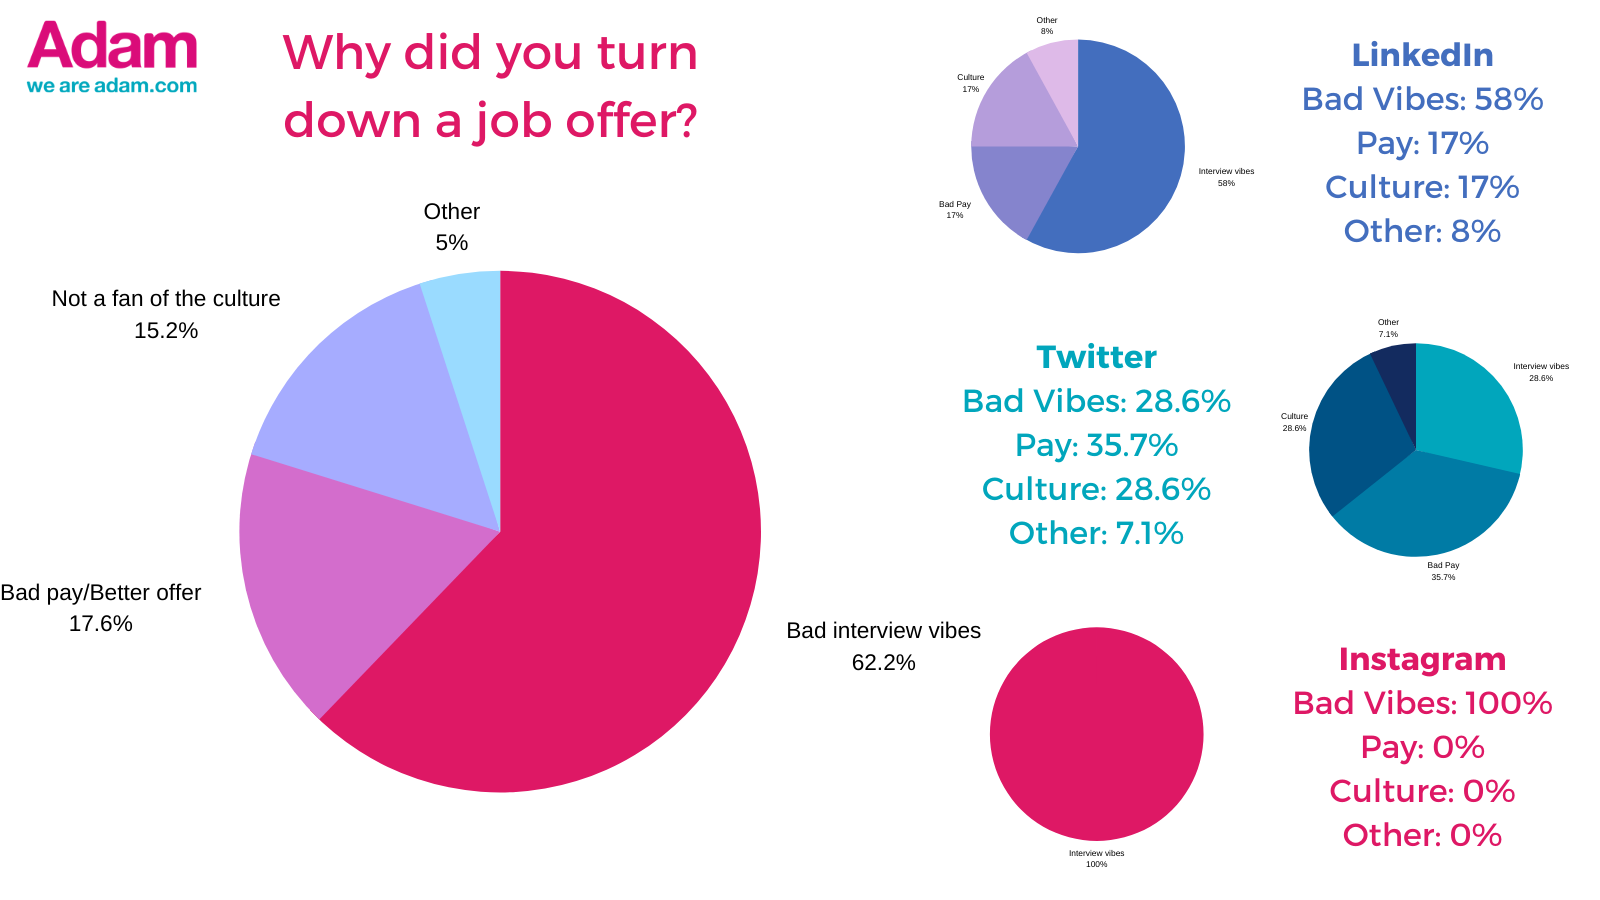 Pie charts showing why respondents had turned down a job offer